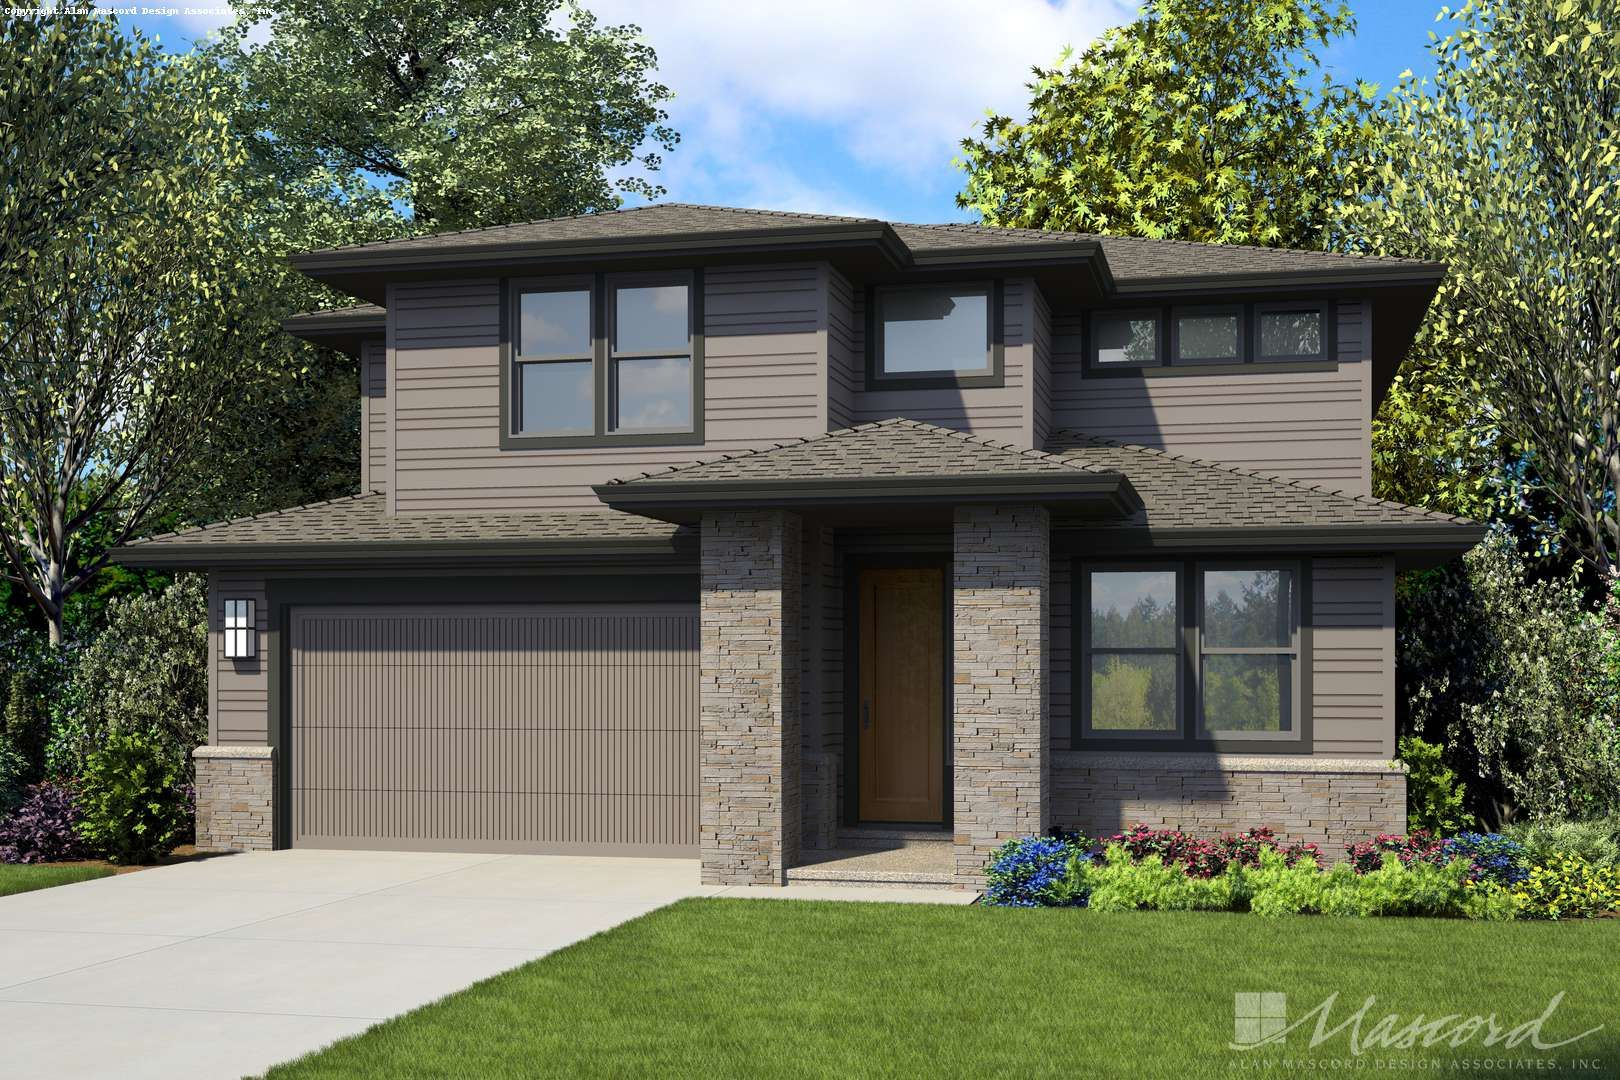 Alan Mascord Design Associates Plan 2230ch Front Rendering Contemporary House Plans Two Story House Plans Narrow Lot House Plans